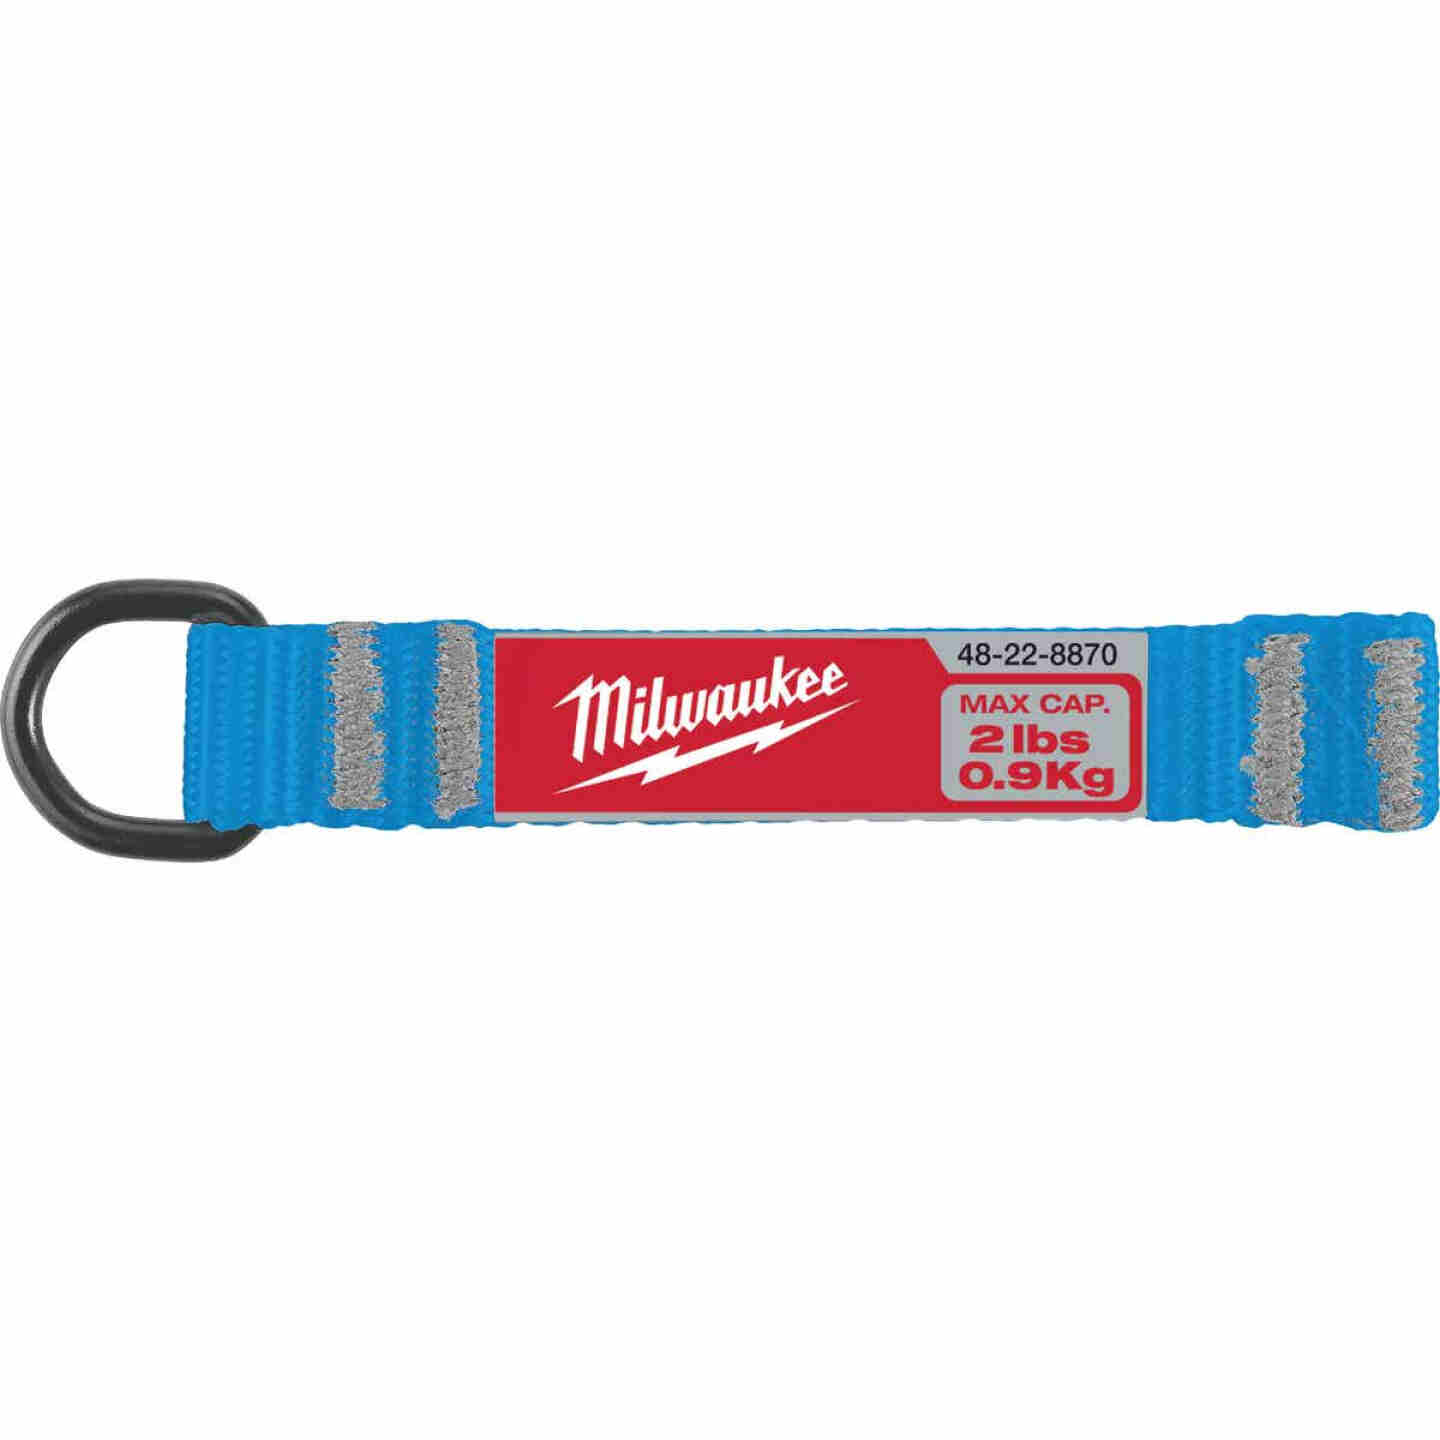 Milwaukee 2 Lb. D-Ring Web Attachment Lanyard Accessory (5-Pack) Image 1